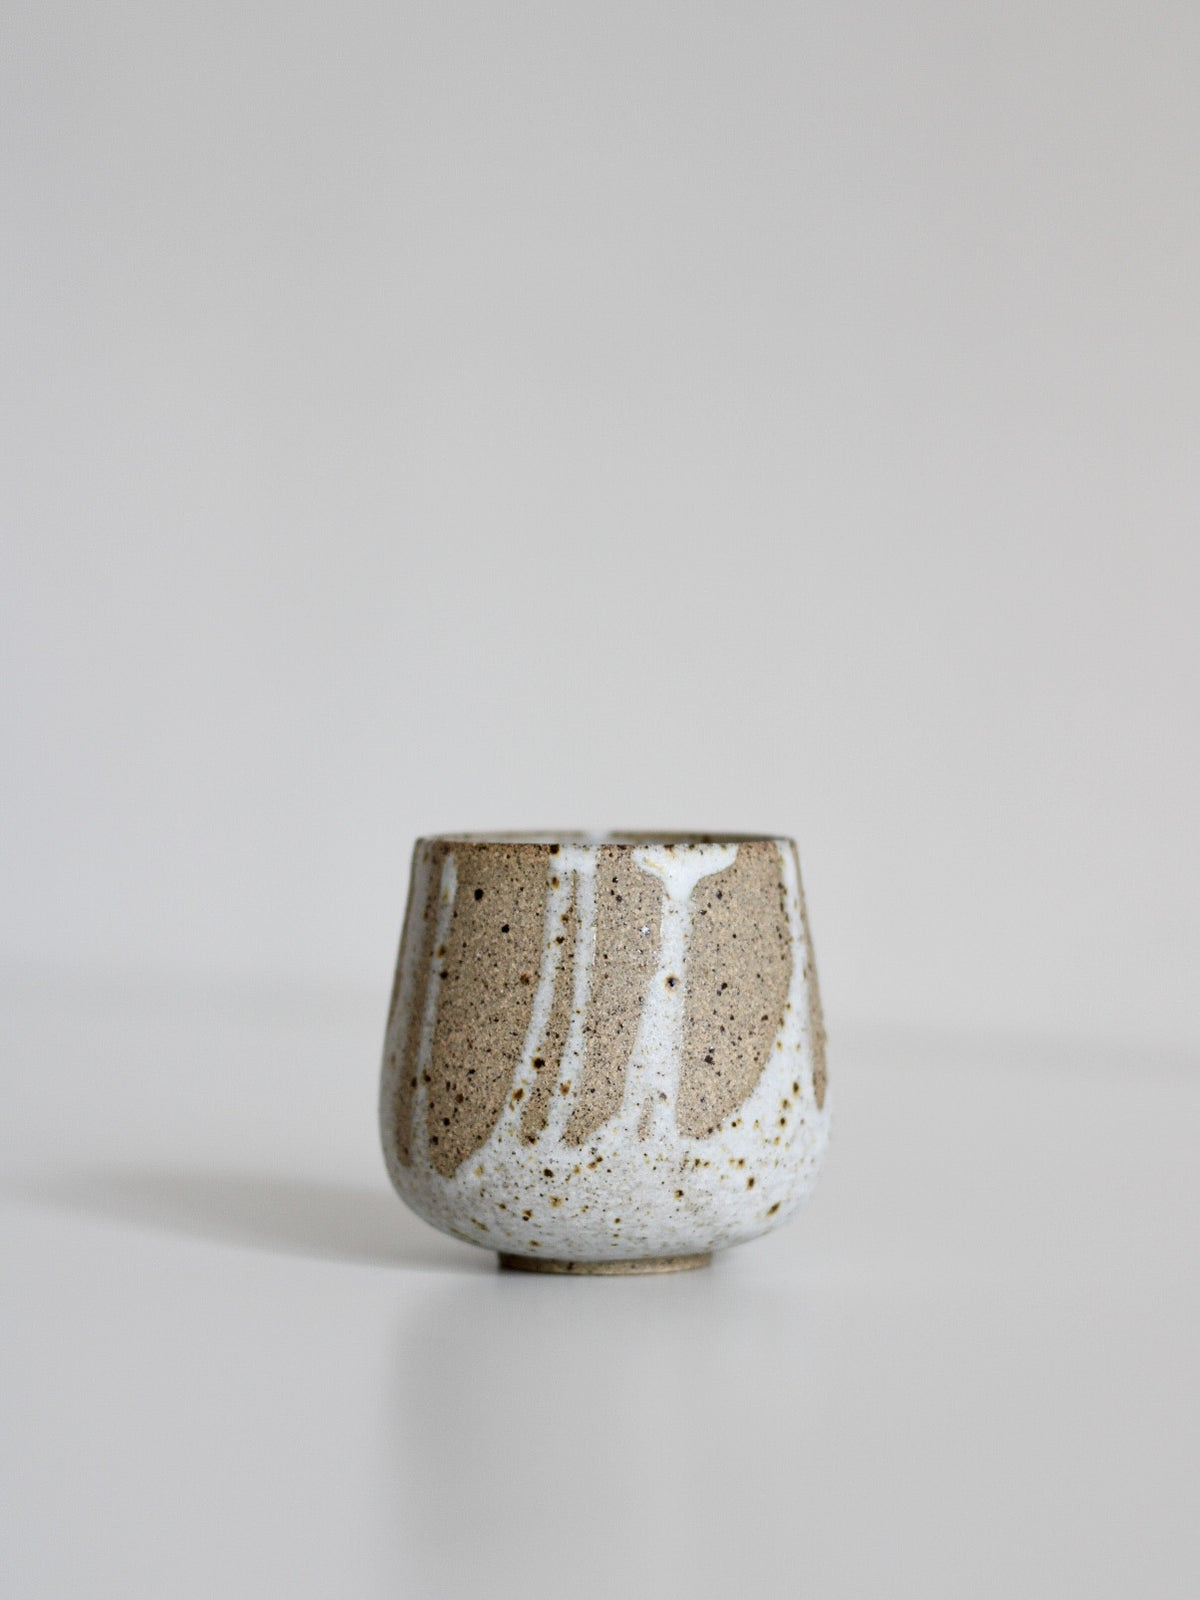 Image of cup (splashes)